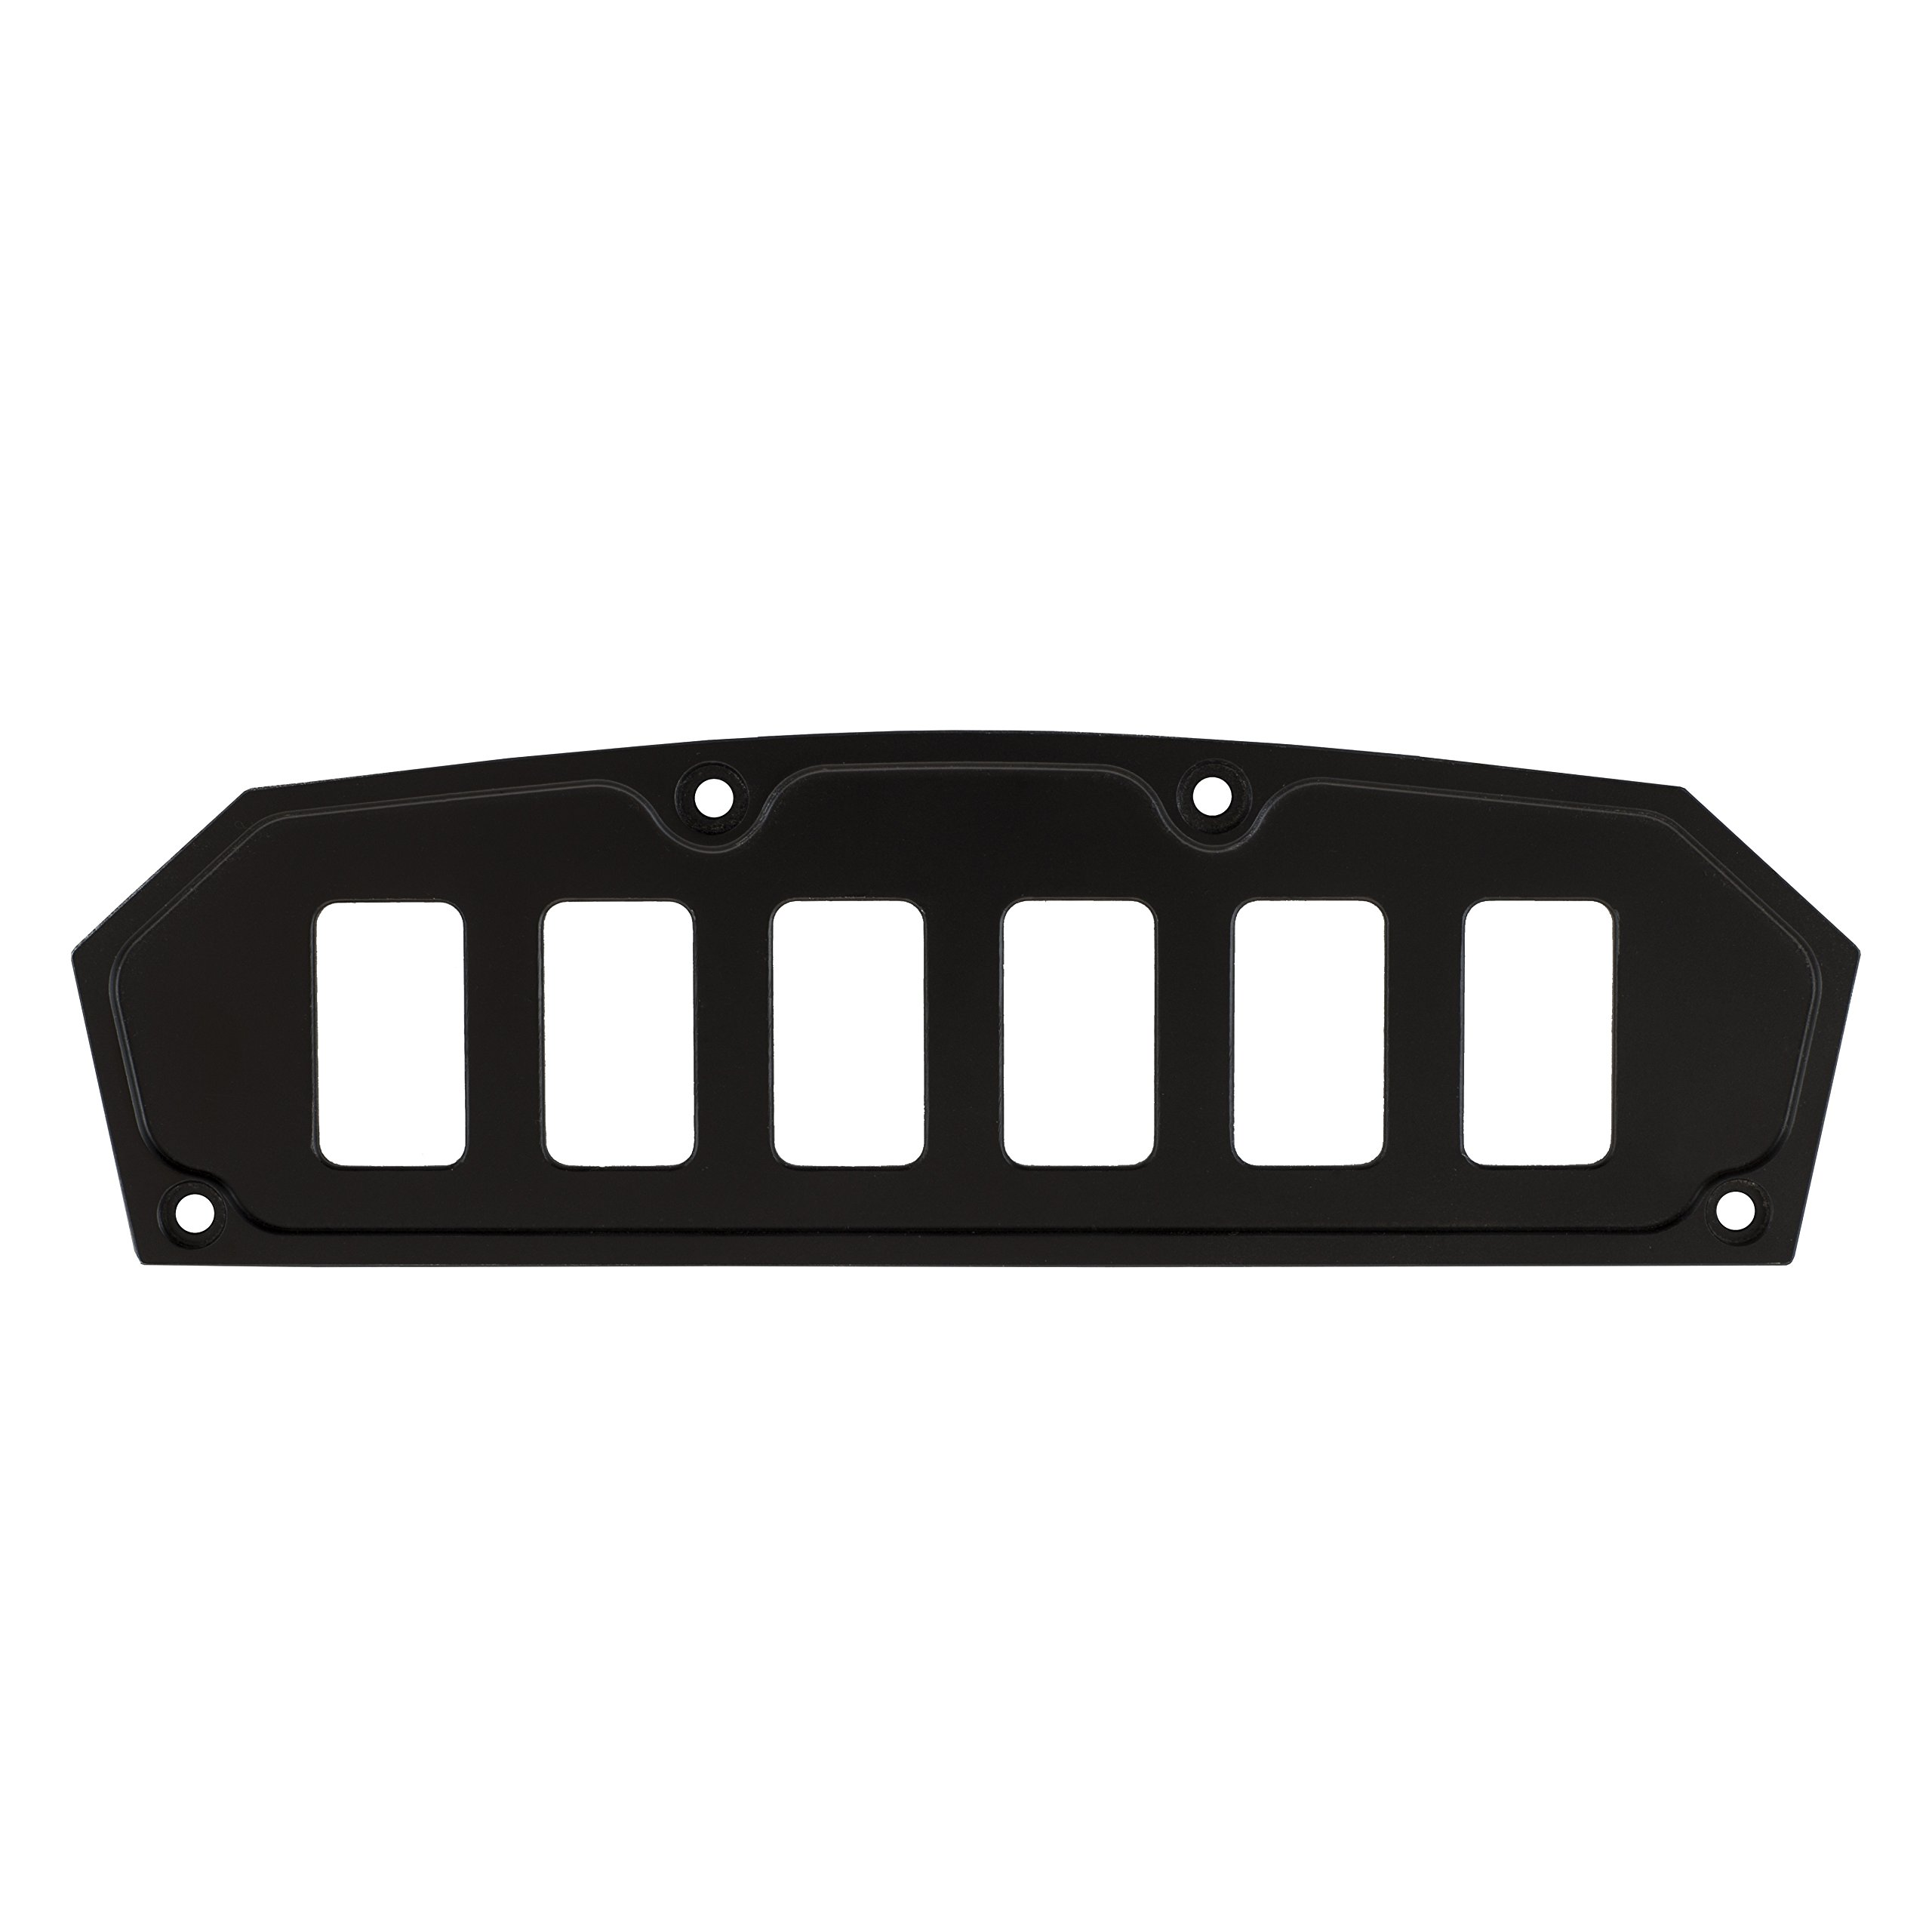 STV Motorsports Custom Switch Dash Panel for Can Am Maverick (no switches included) (6, Black)